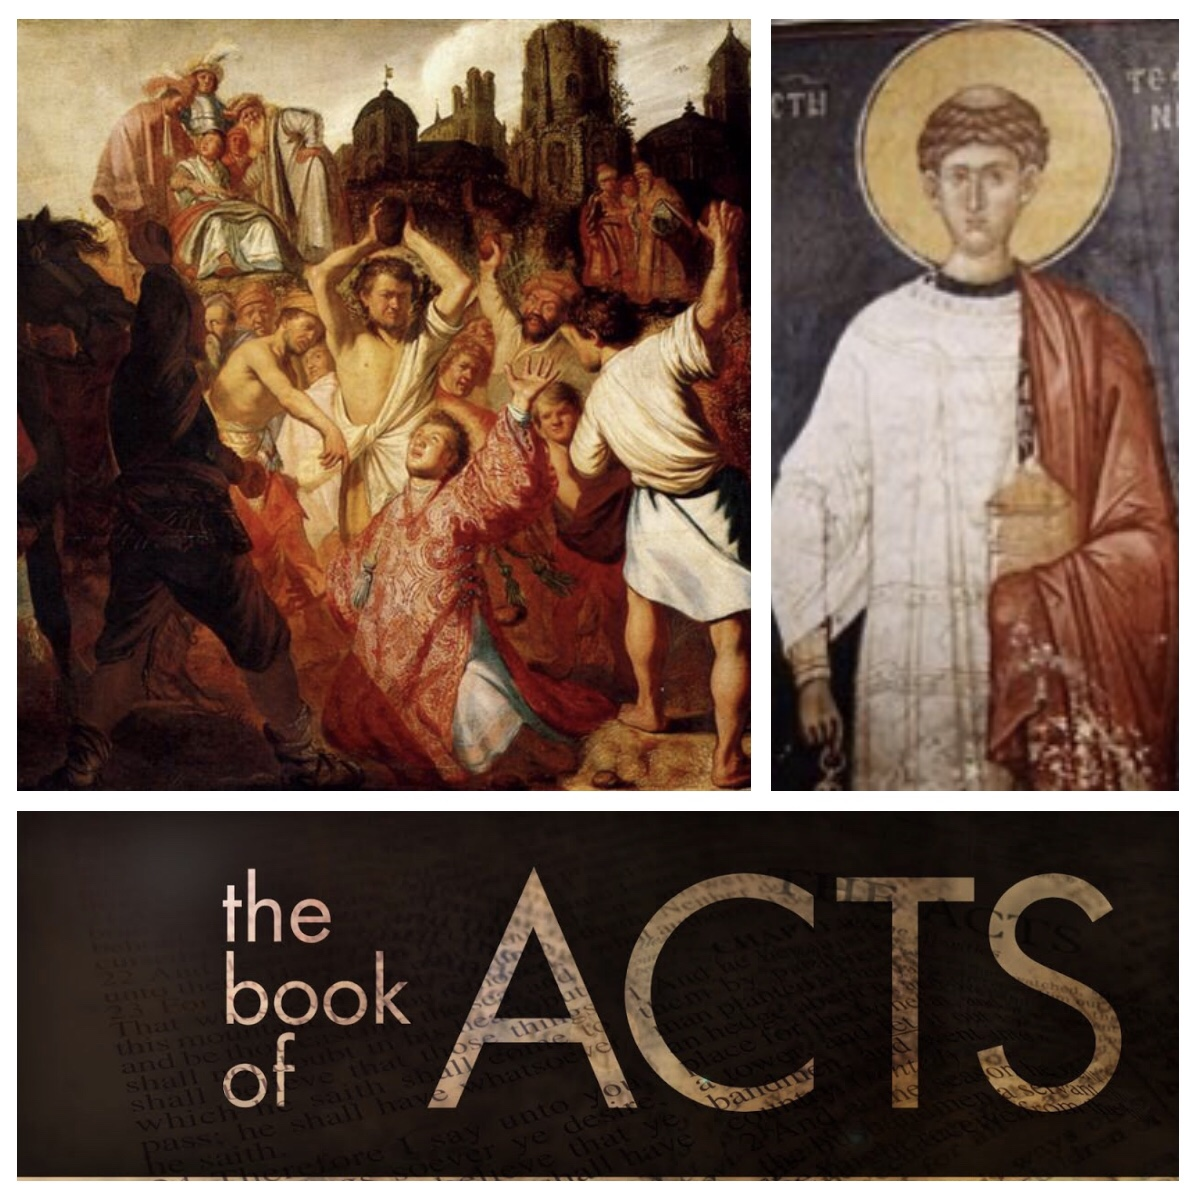 The heavens opened: the witness of Stephen (Acts 7)